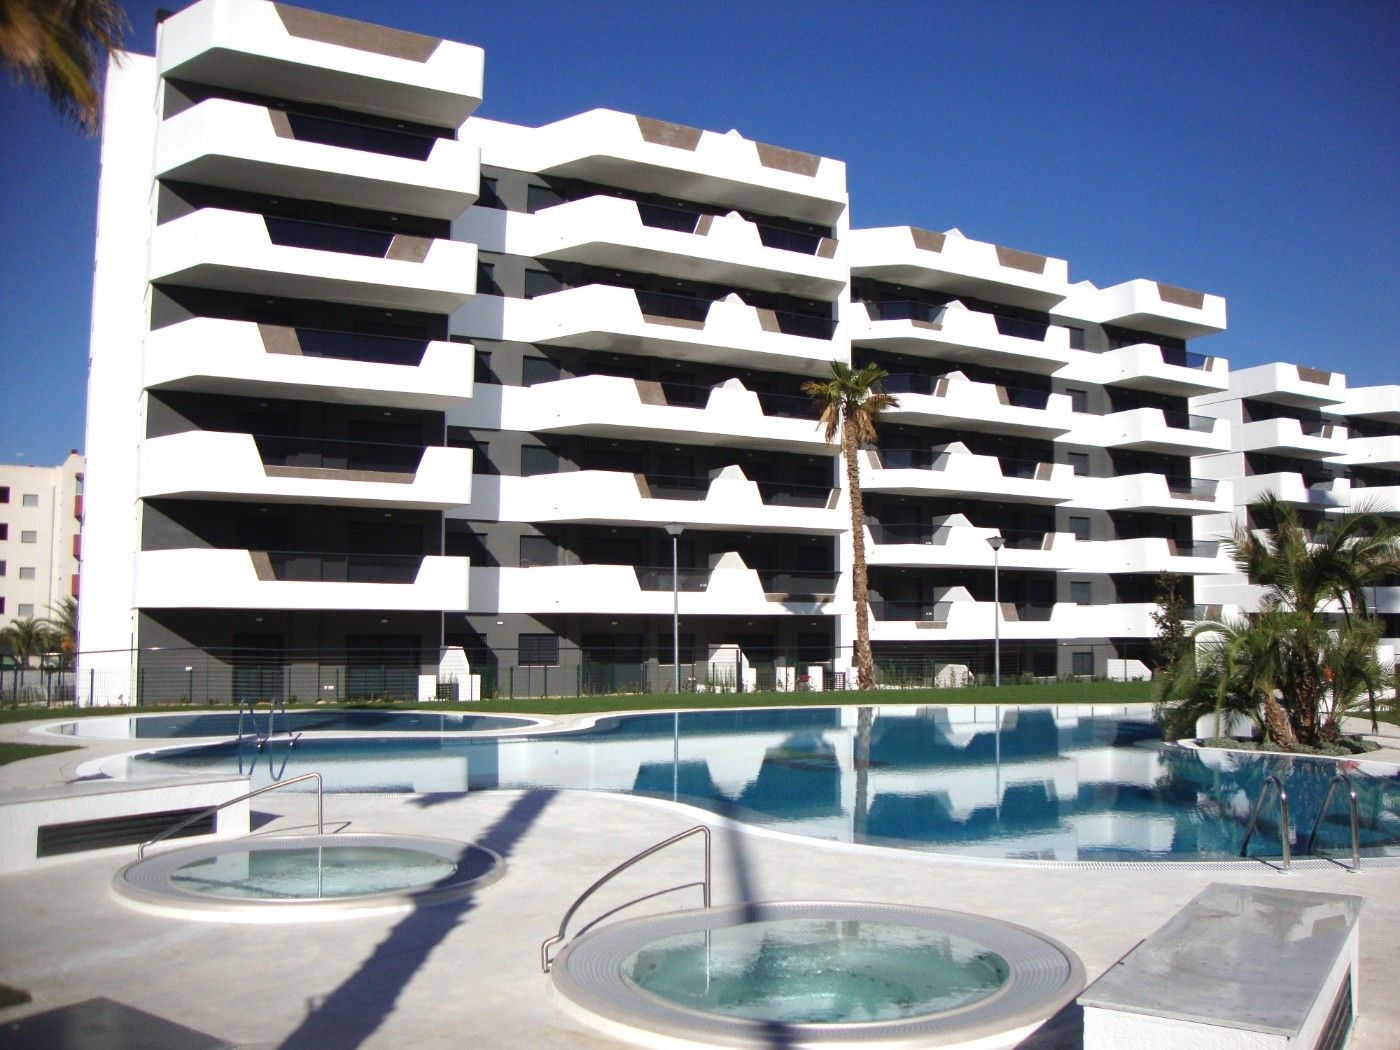 Apartment  Avenida costa blanca. Obra nueva. New building